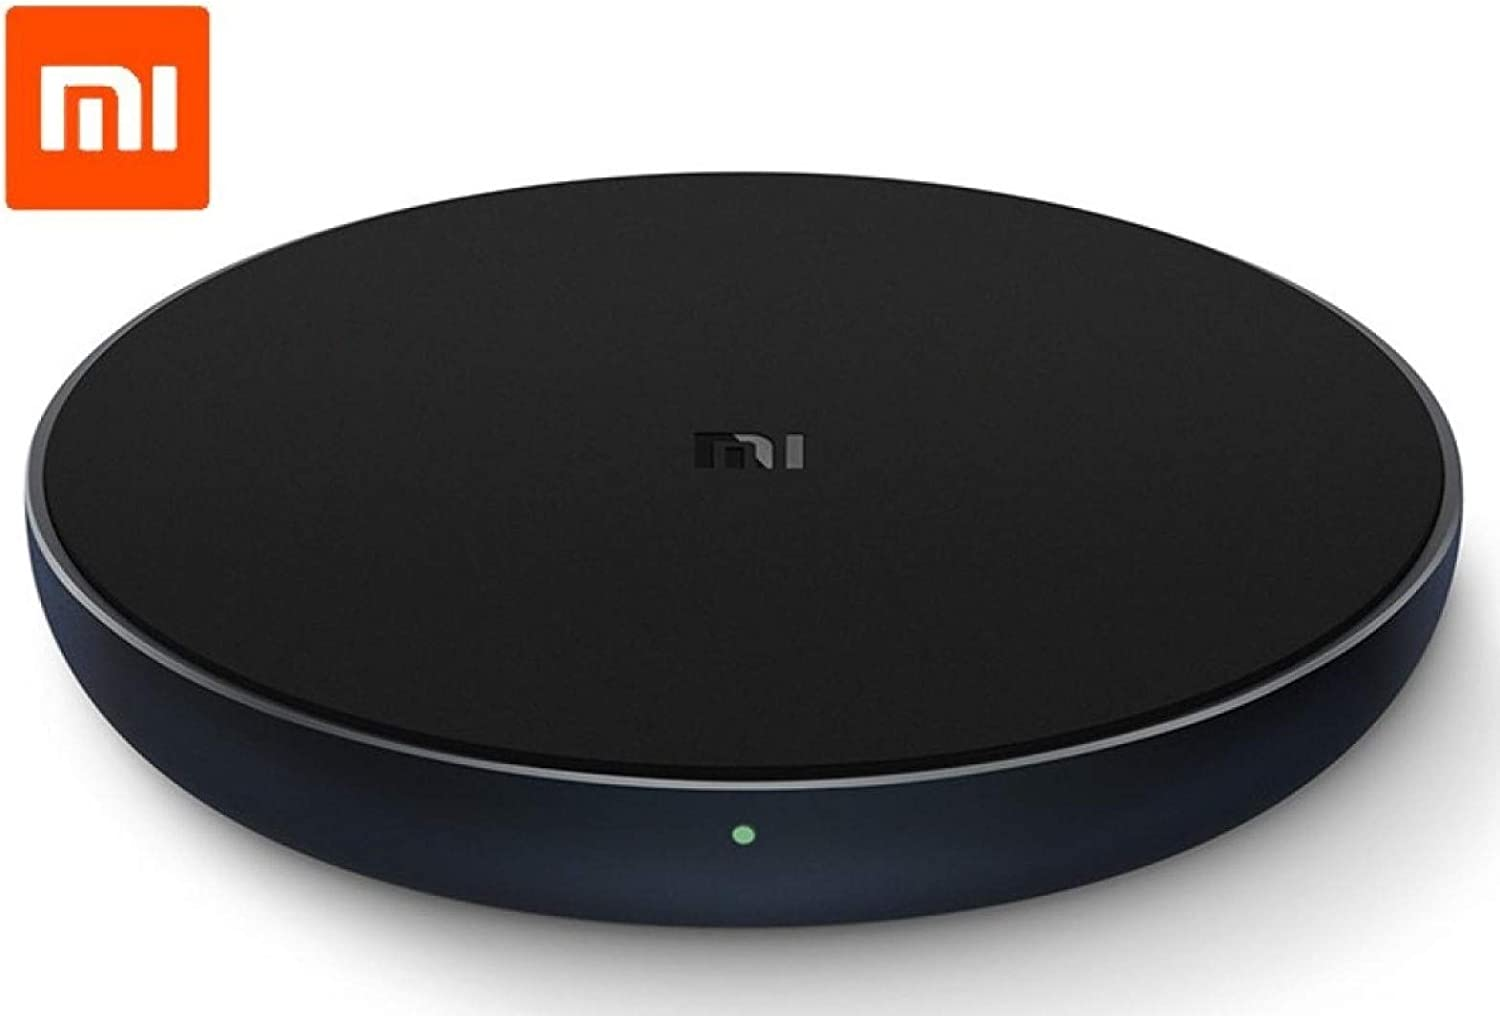 Xiaomi Mi Compatible Wireless Charger Fast Wireless QI Charger 7.5W / 10W Negro